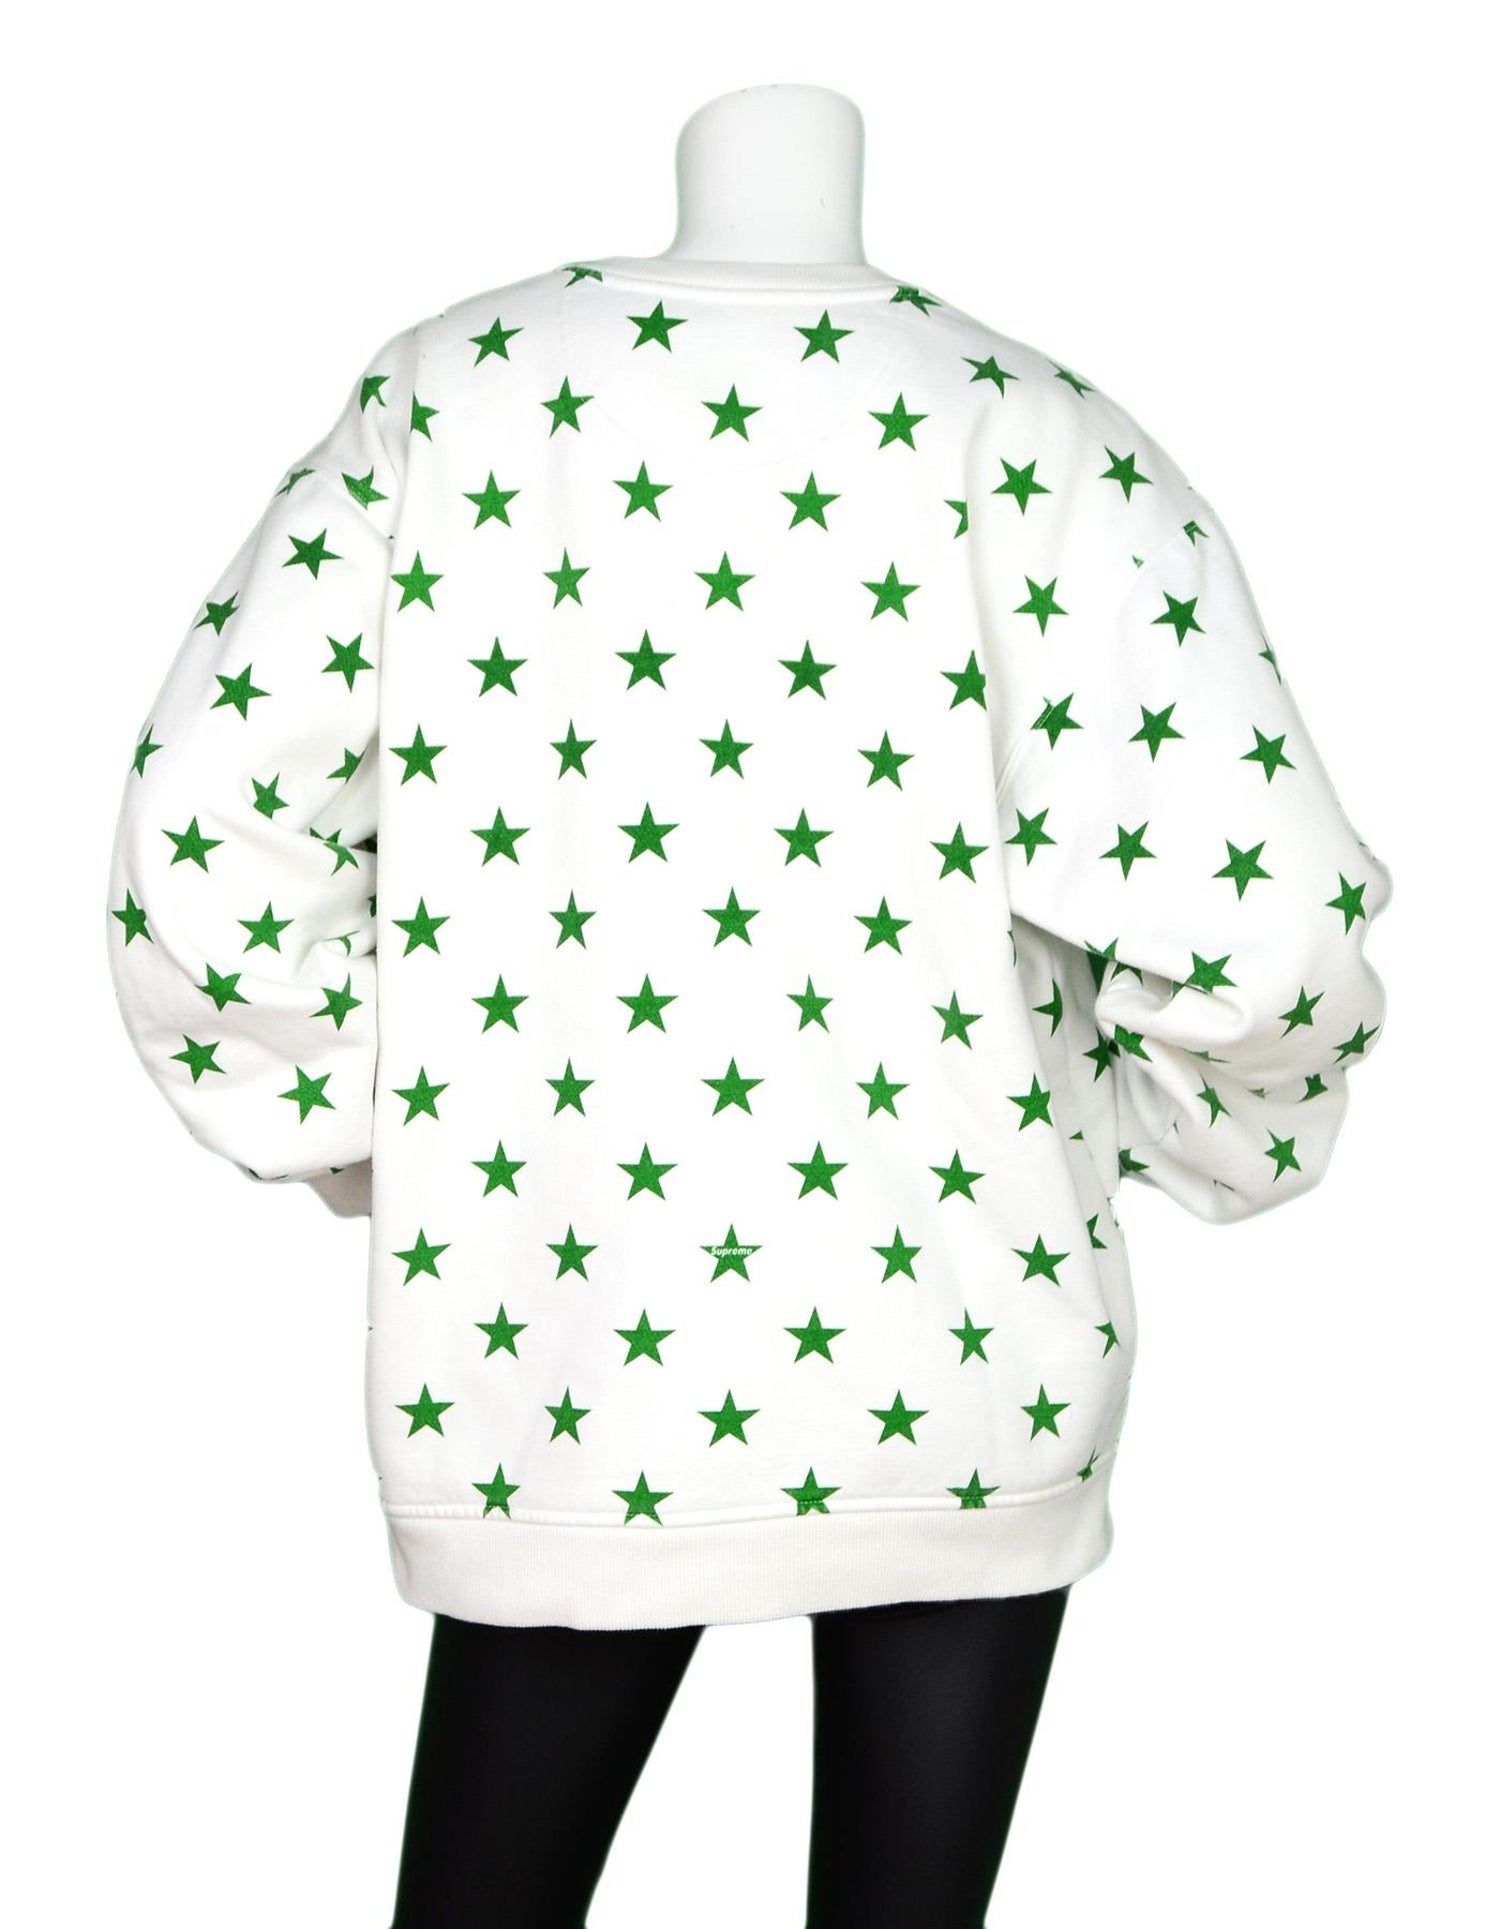 ed08bf295fbe Champion x Supreme Limited Edition White Green Star Print Crewneck  Sweatshirt XL For Sale at 1stdibs